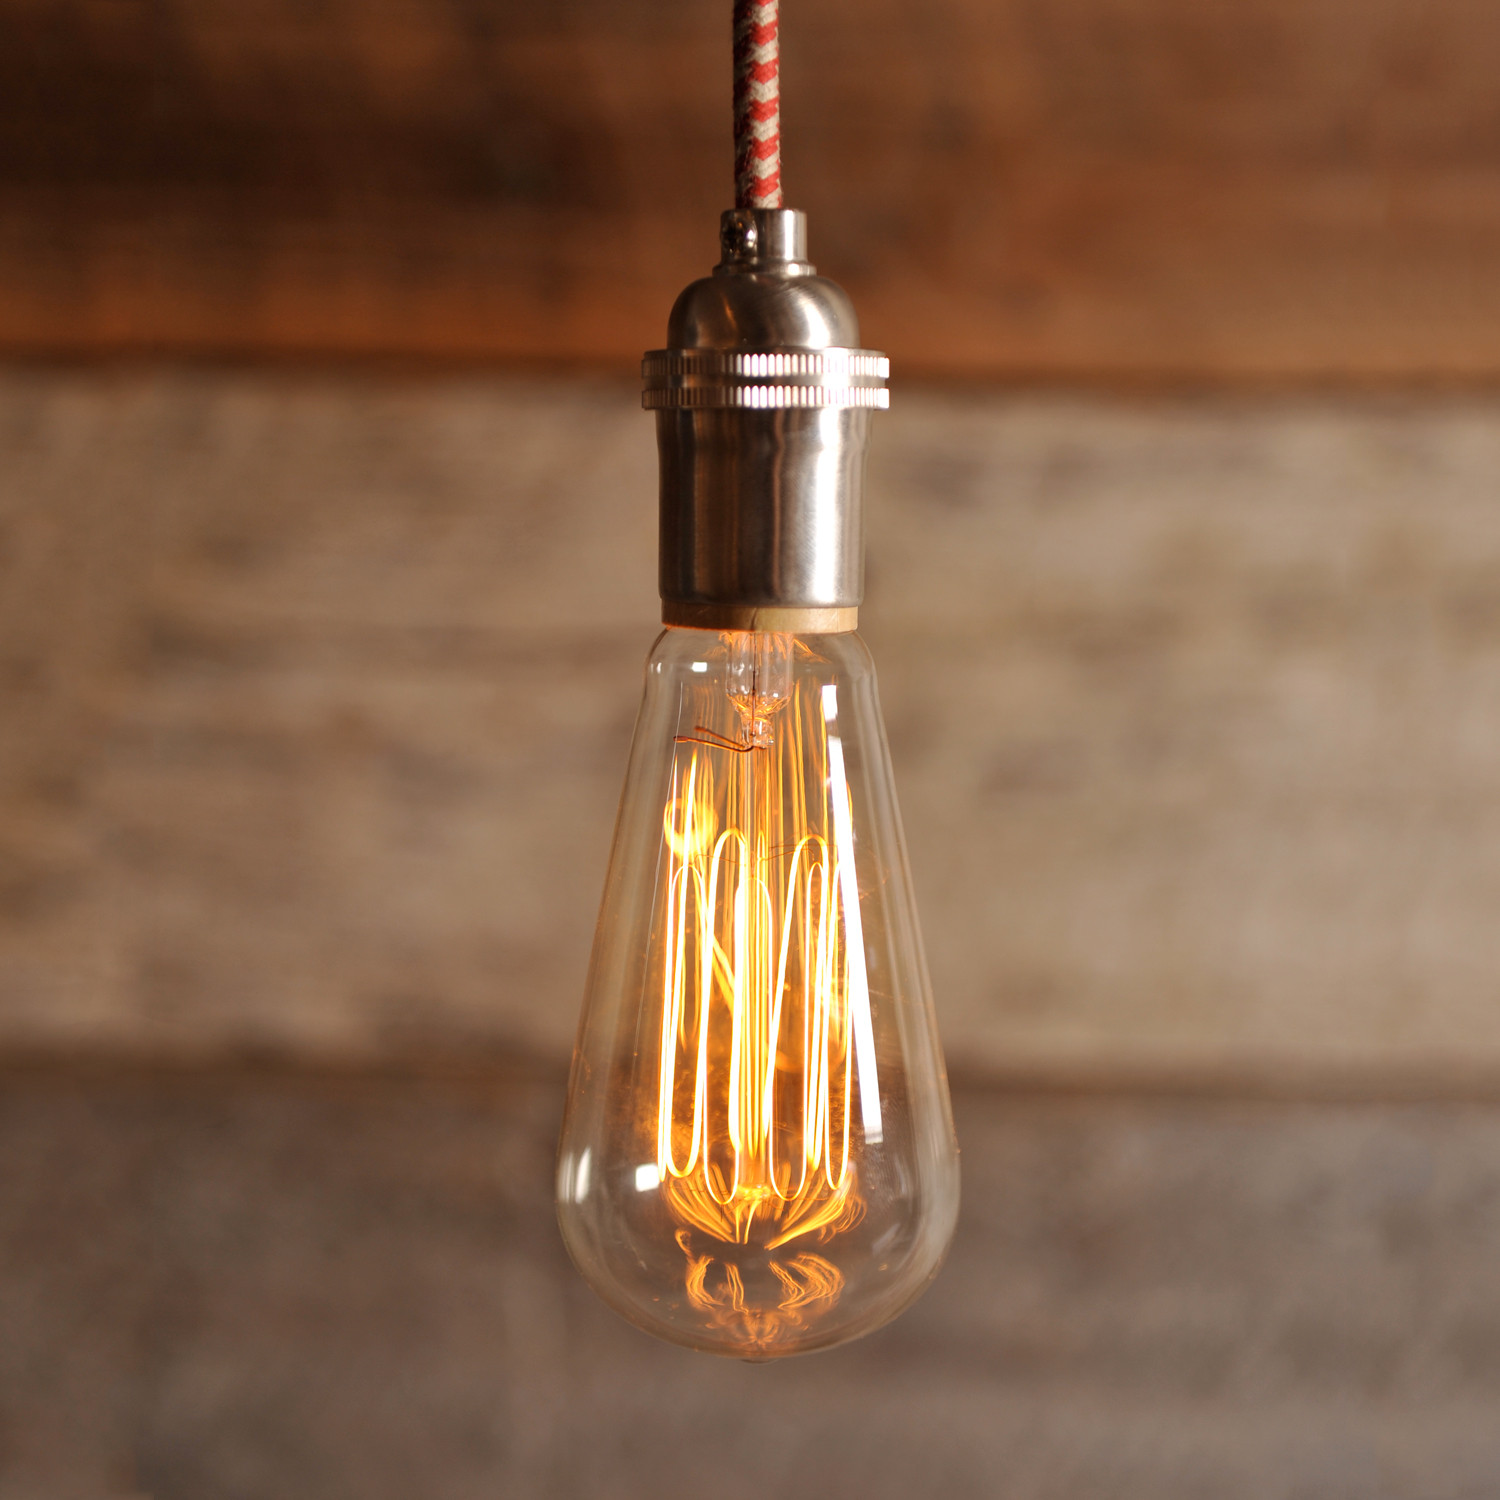 Vintage Style Light Bulb - Amazing Light & Fixtures Ideas:Vintage Style Edison Light Bulb Southern Lights Electric Touch,Lighting